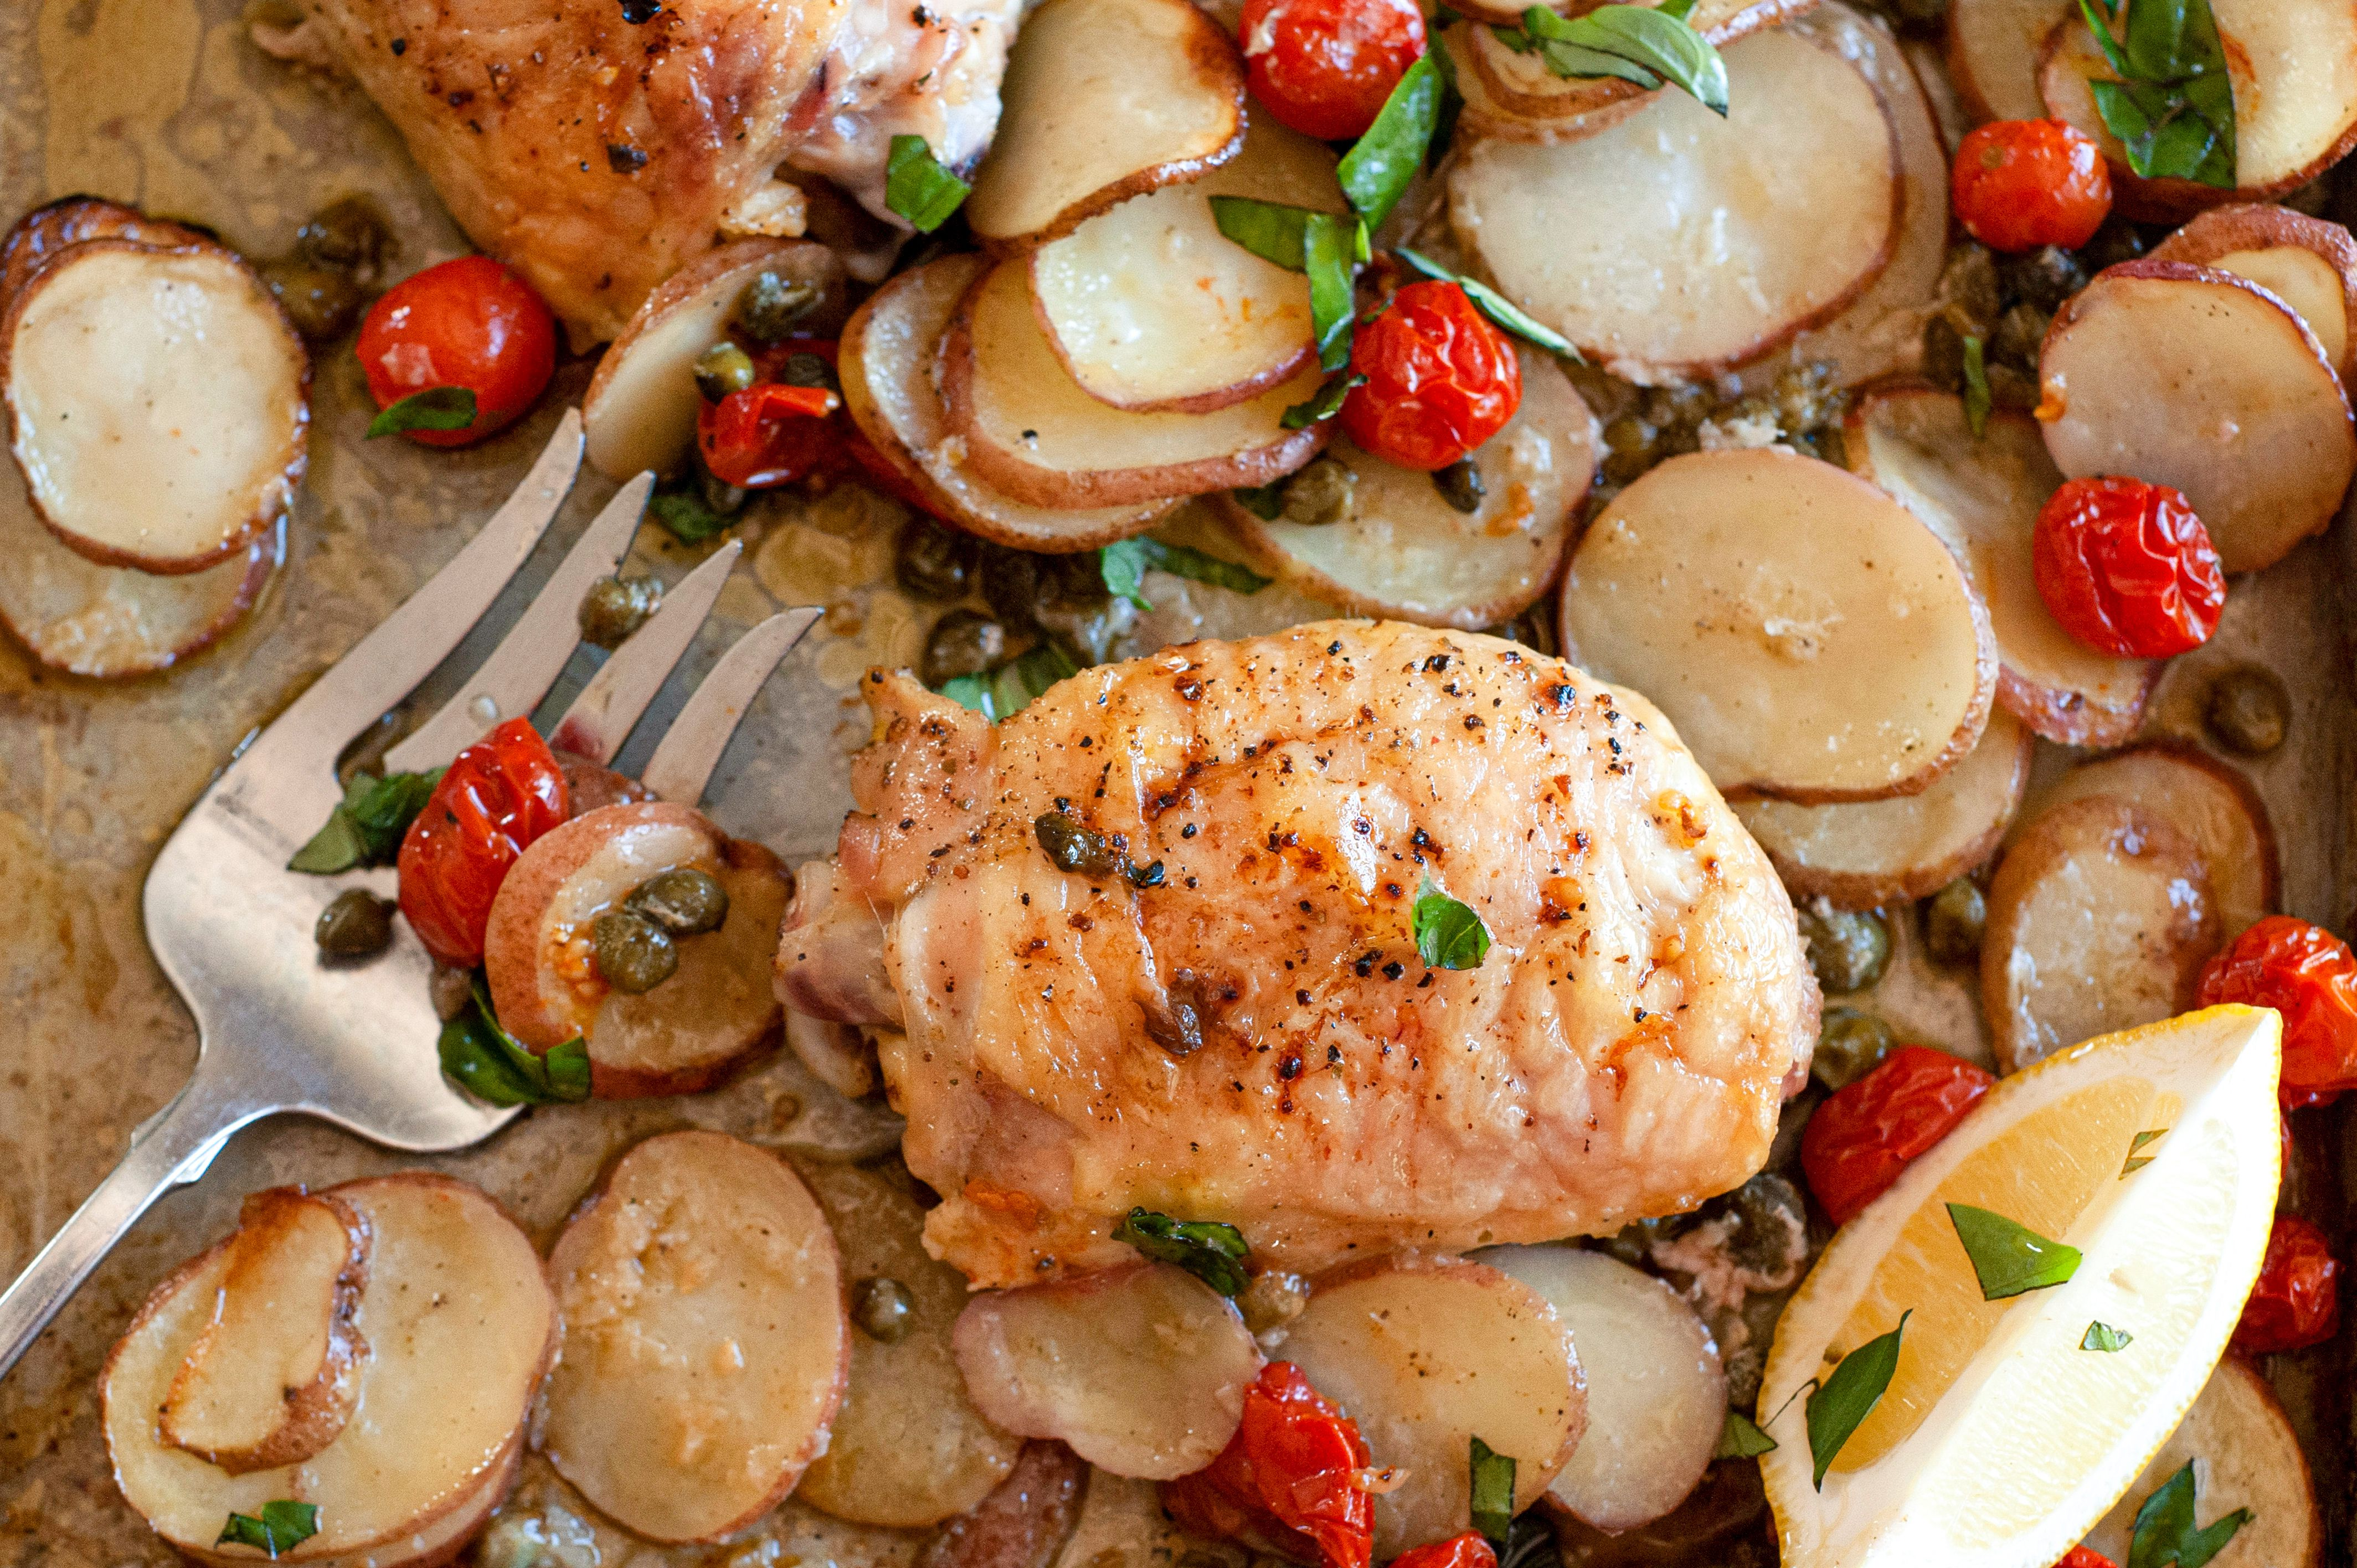 Sheet pan lemon chicken thighs with potatoes and veggies with a fork next to it on the pan.